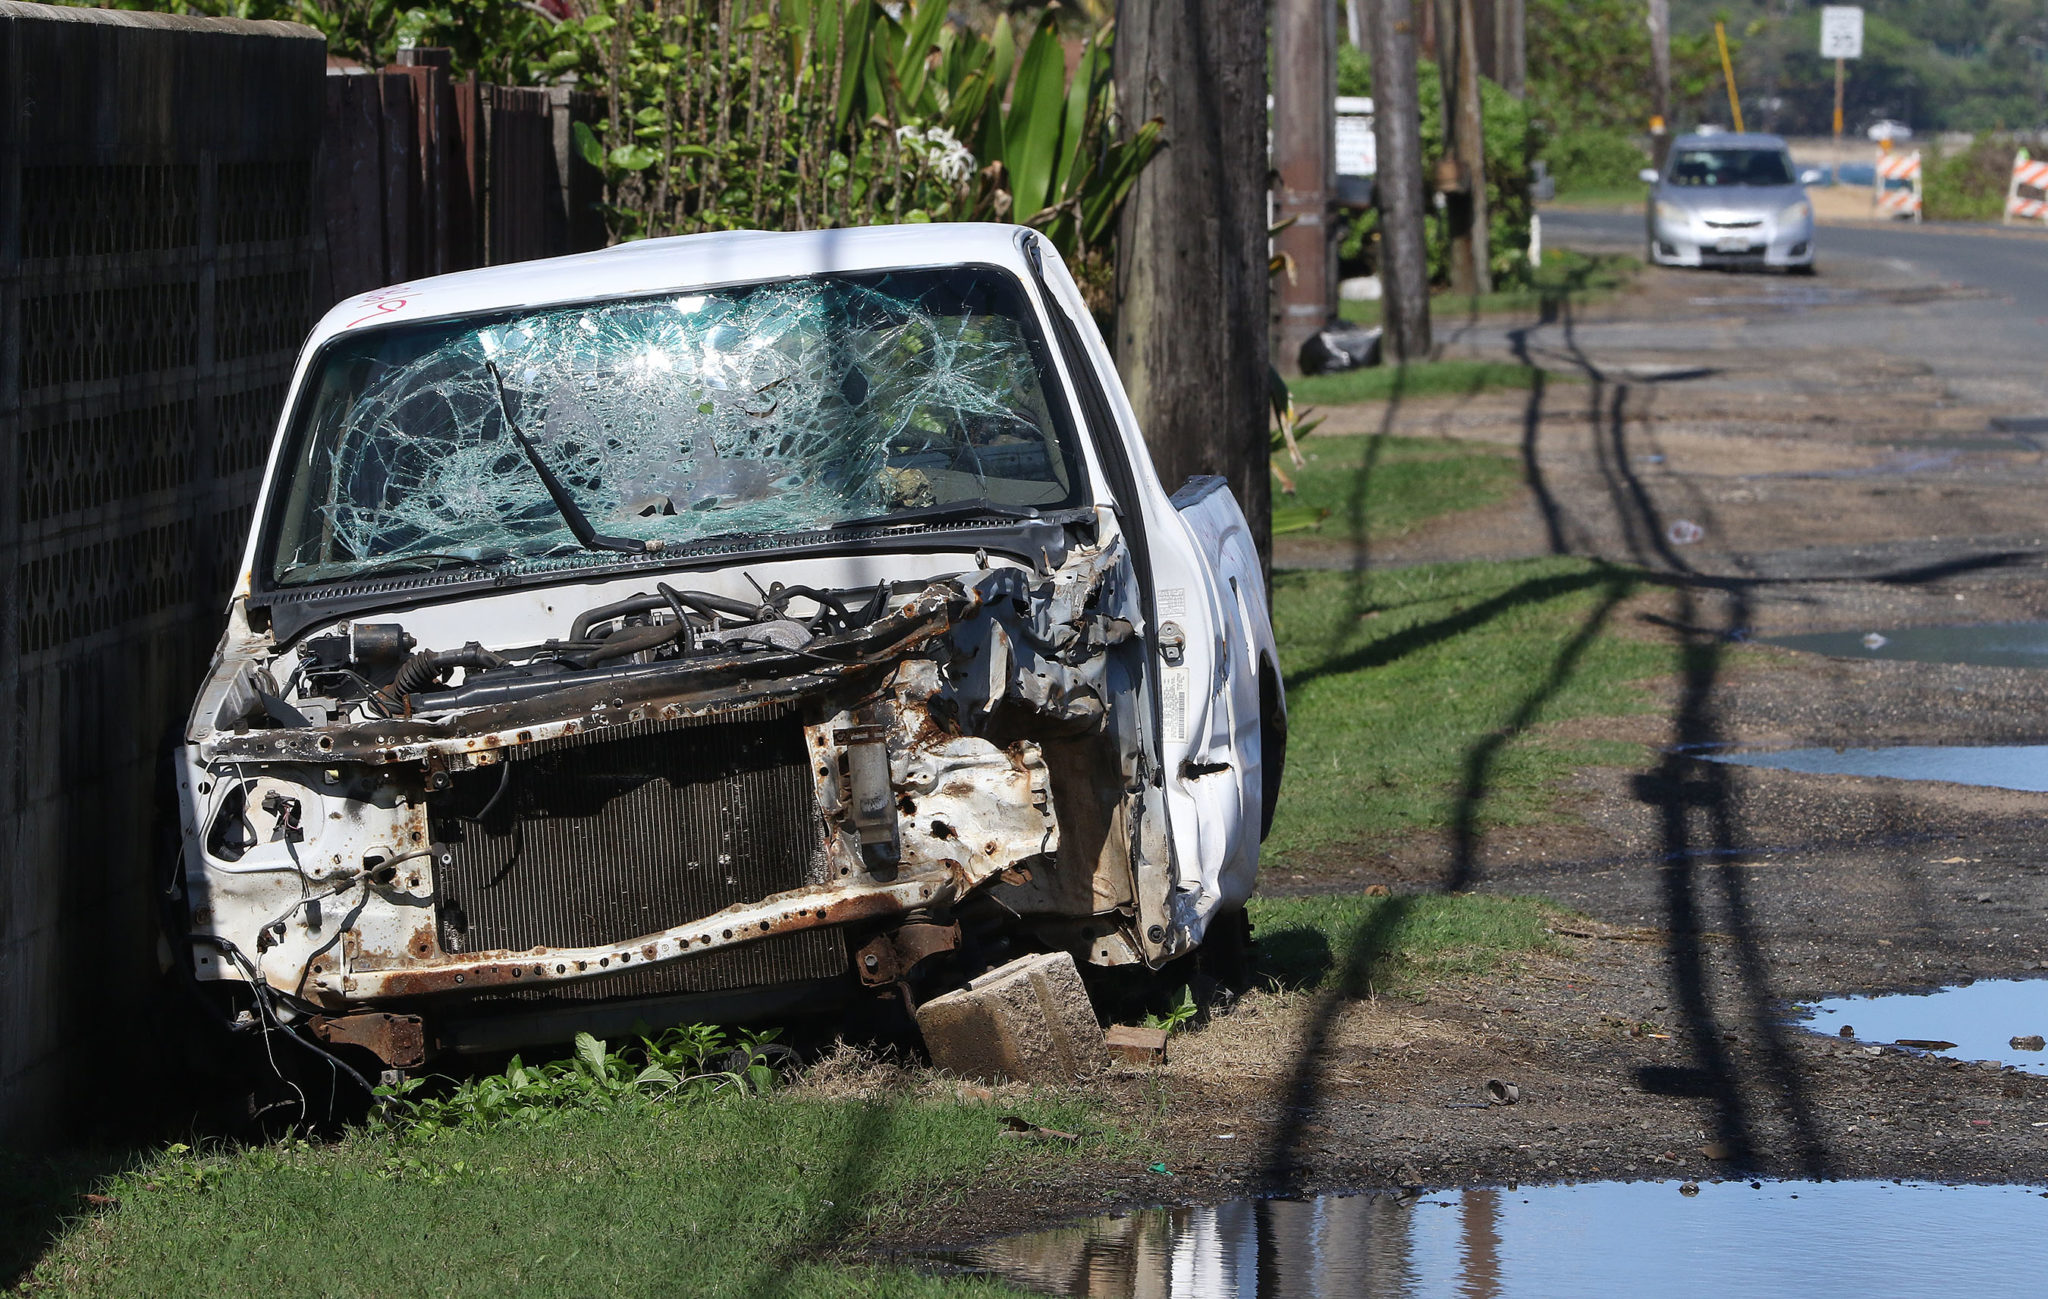 <p>Abandoned cars like this one on the North Shore are often stripped of valuable parts, leaving metal, broken glass and wires behind on the side of the road.</p>